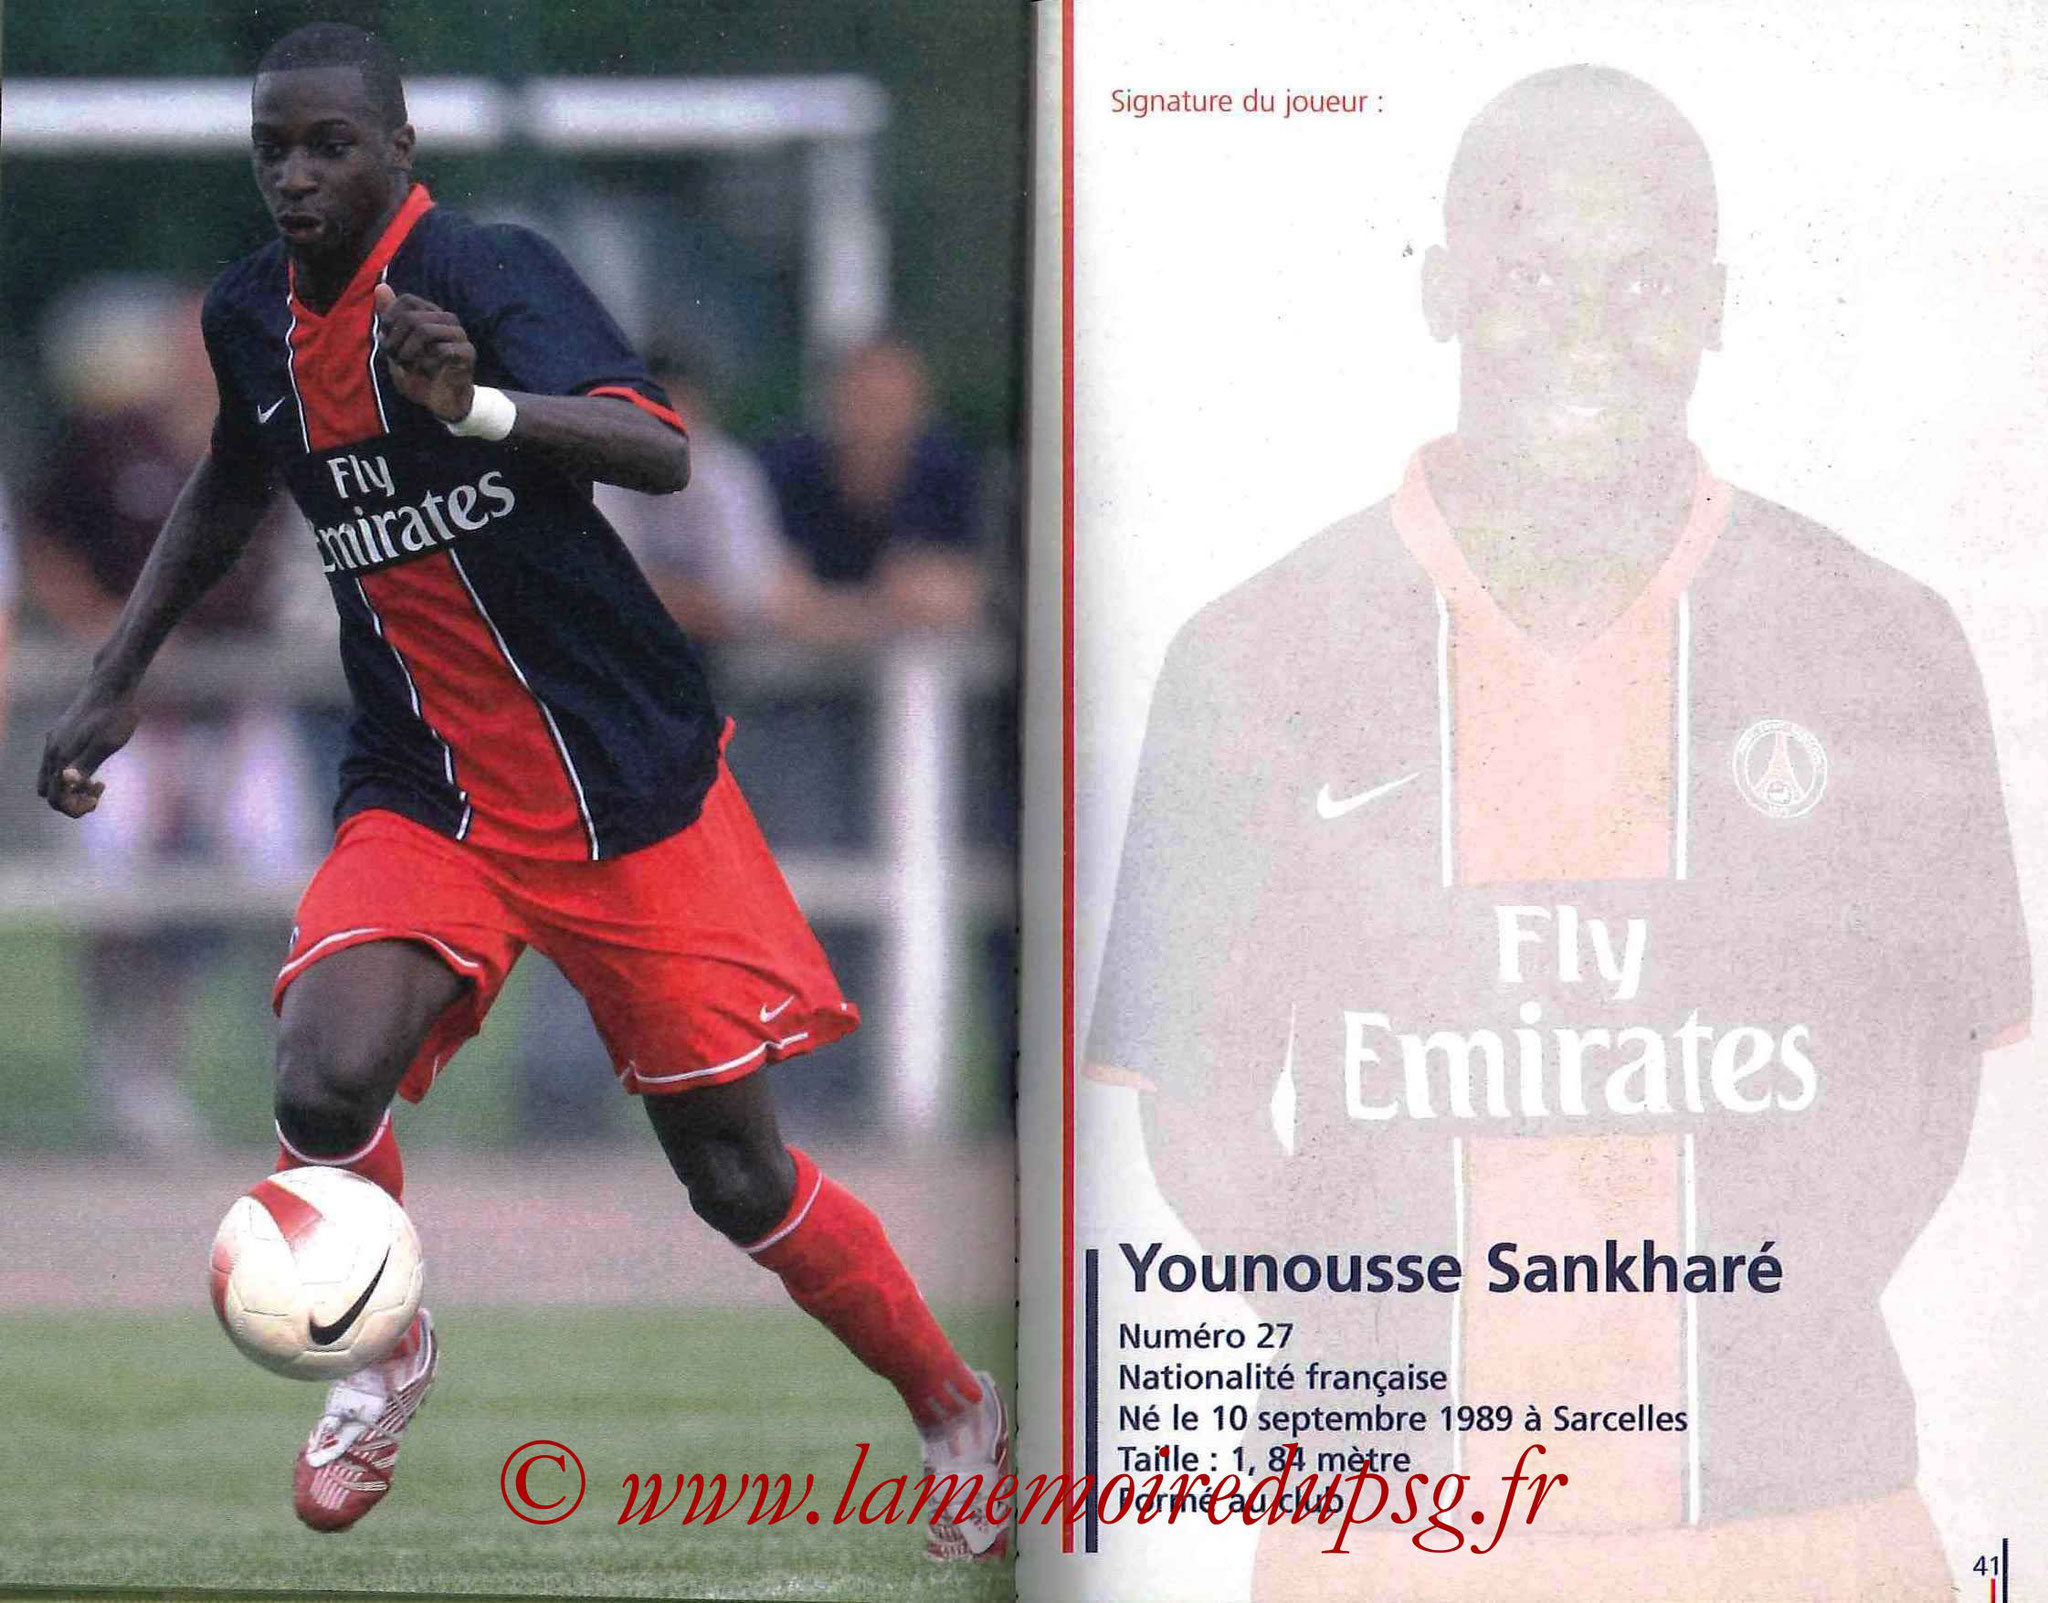 2007-08 - Guide de la Saison PSG - Pages 40 et 41 - Younousse SANKHARE